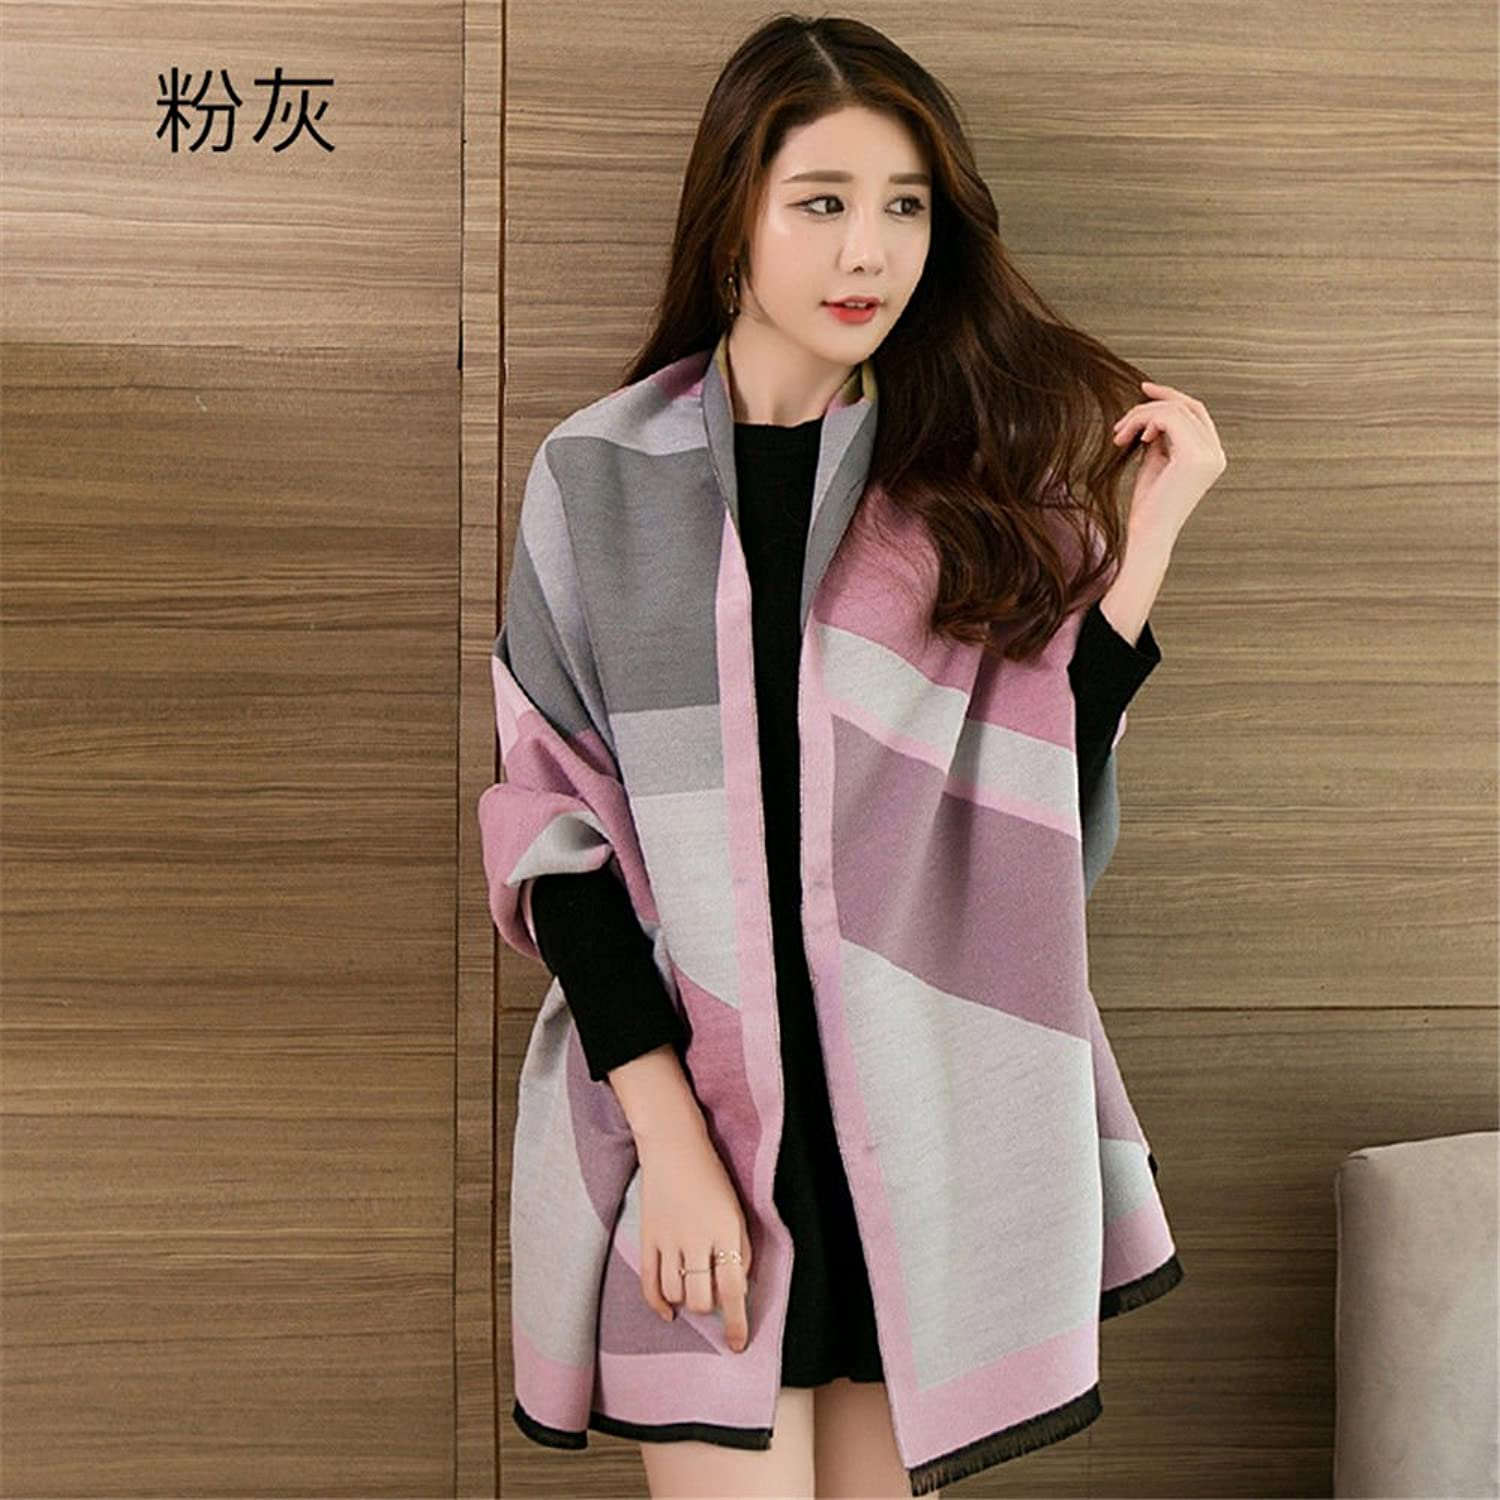 ZHANGYONG Female Shawl in Autumn and Winter in Spring and Autumn AllMatch Super Warm Autumn and Winter Cloak Coat Scarf DualPurpose Thickened 190cm60cm,Fly ash